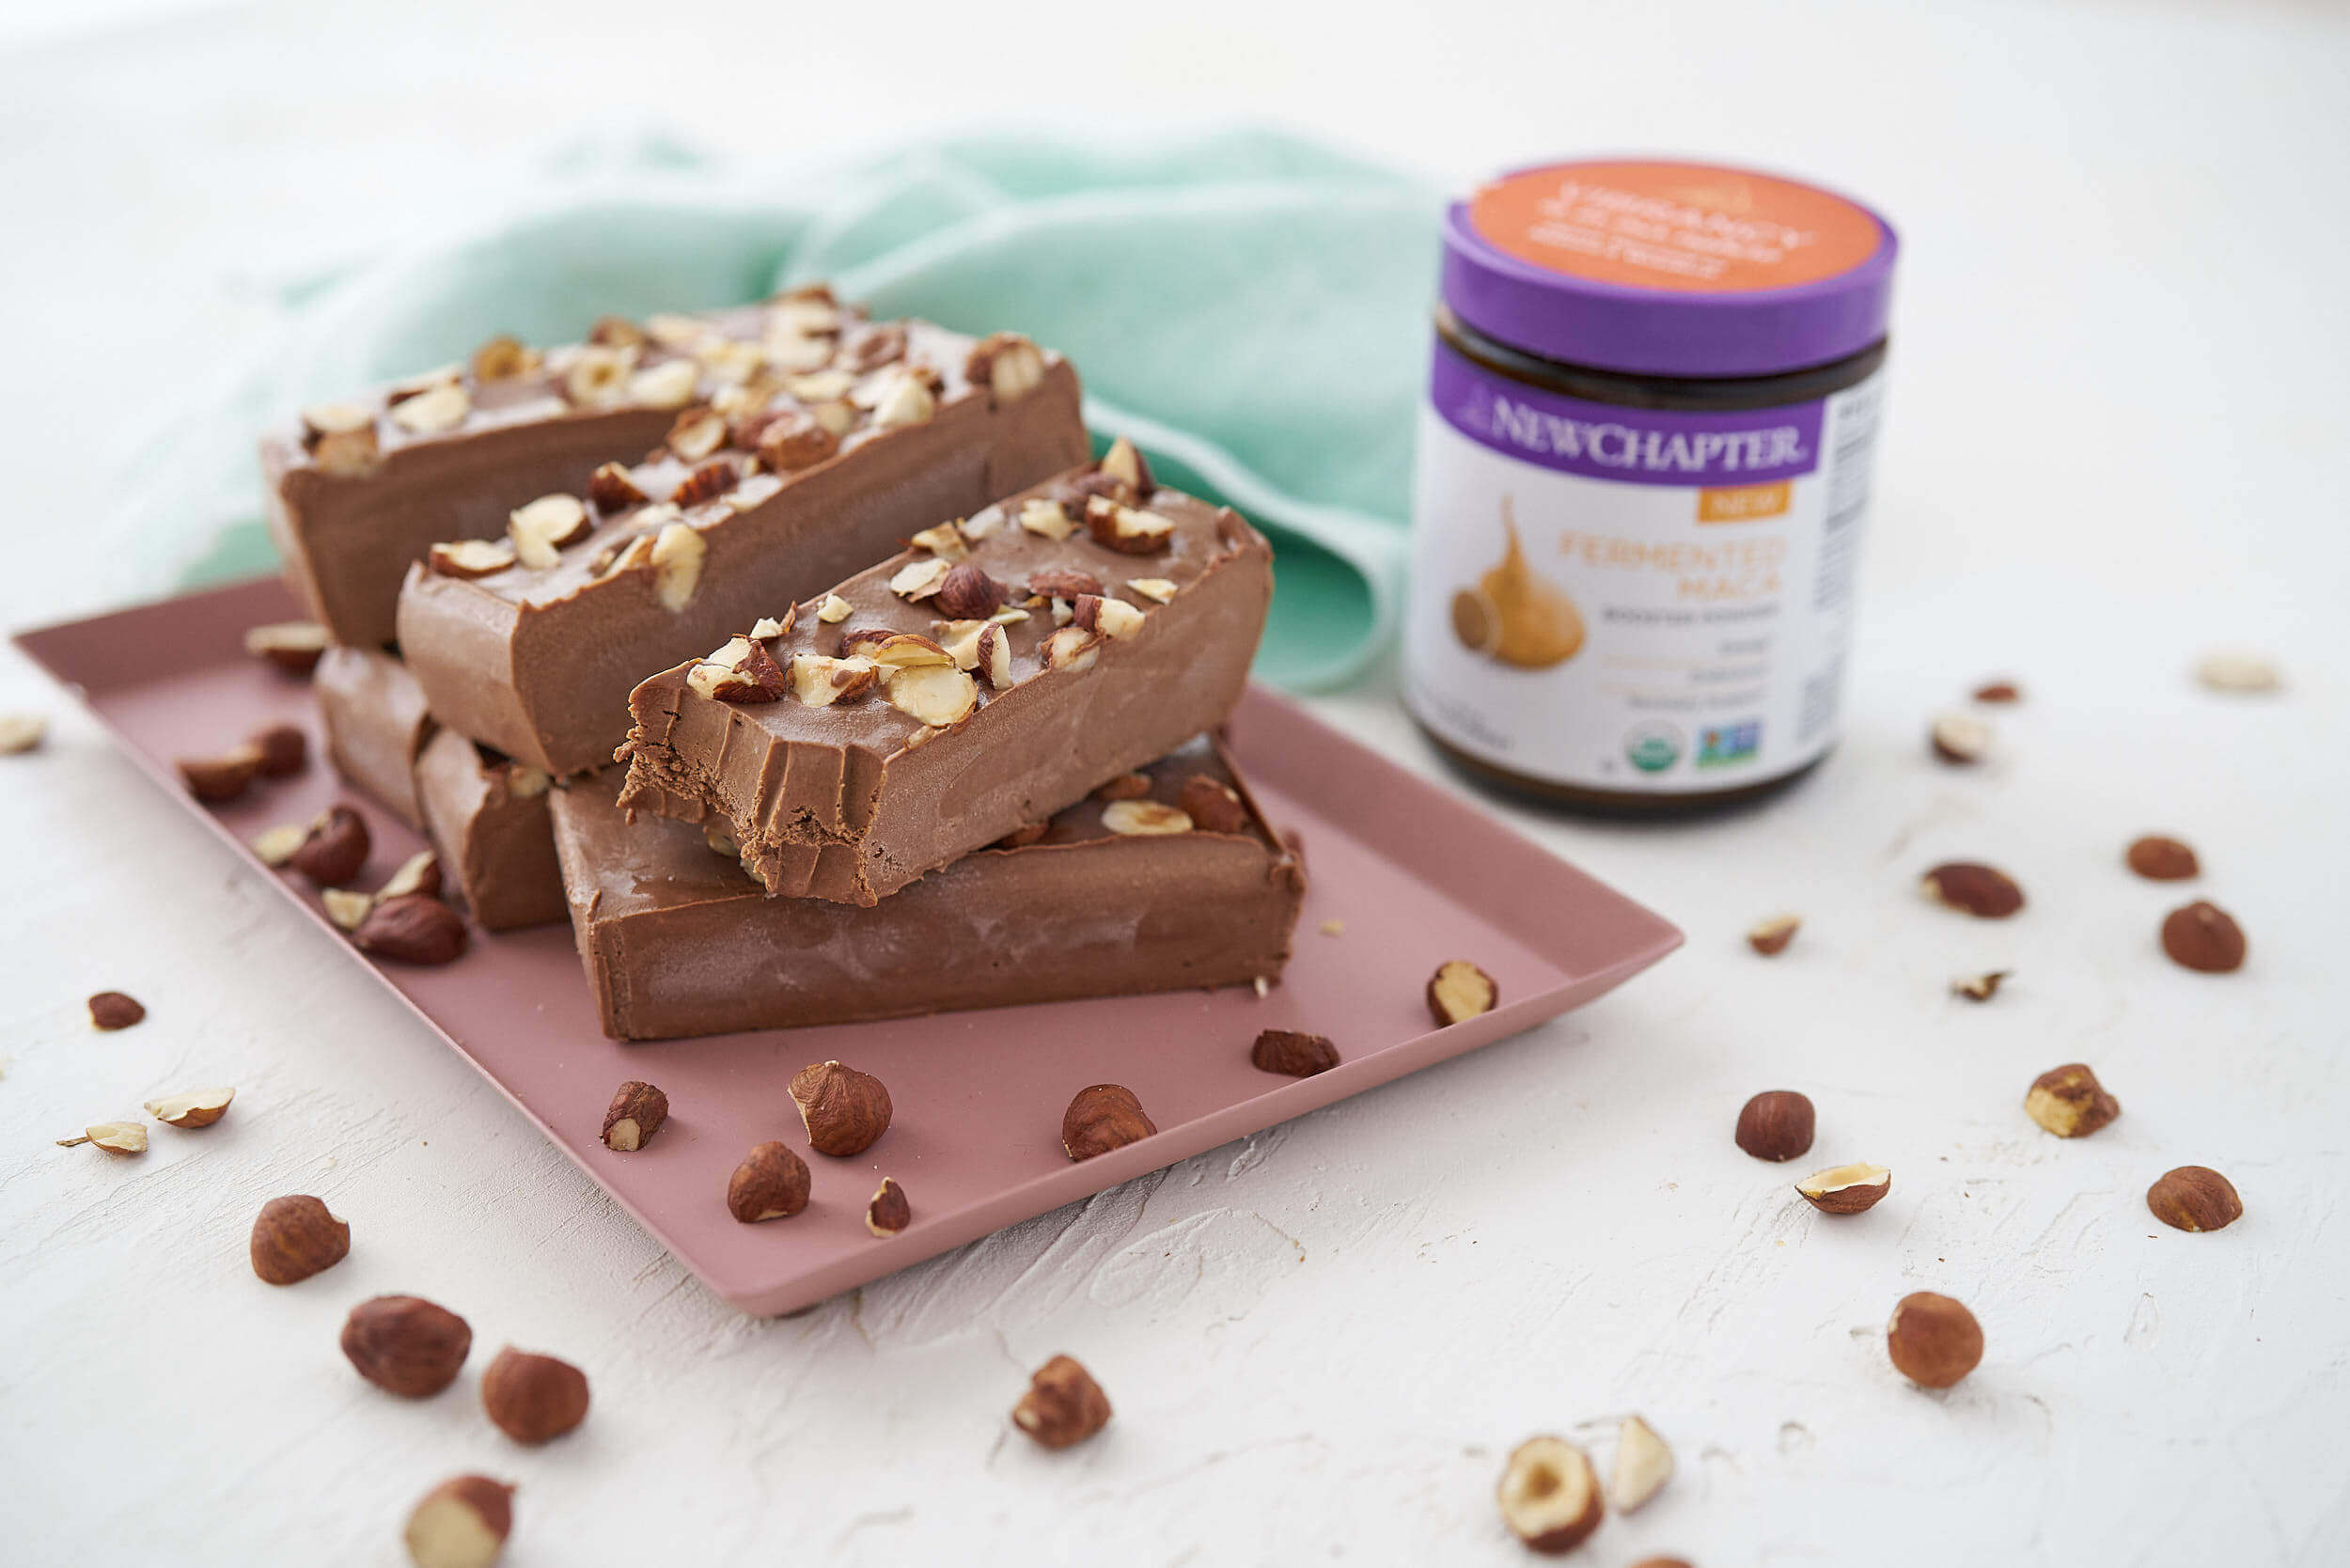 Maca Chocolate Hazelnut Freezer Fudge from Joy McCarthy